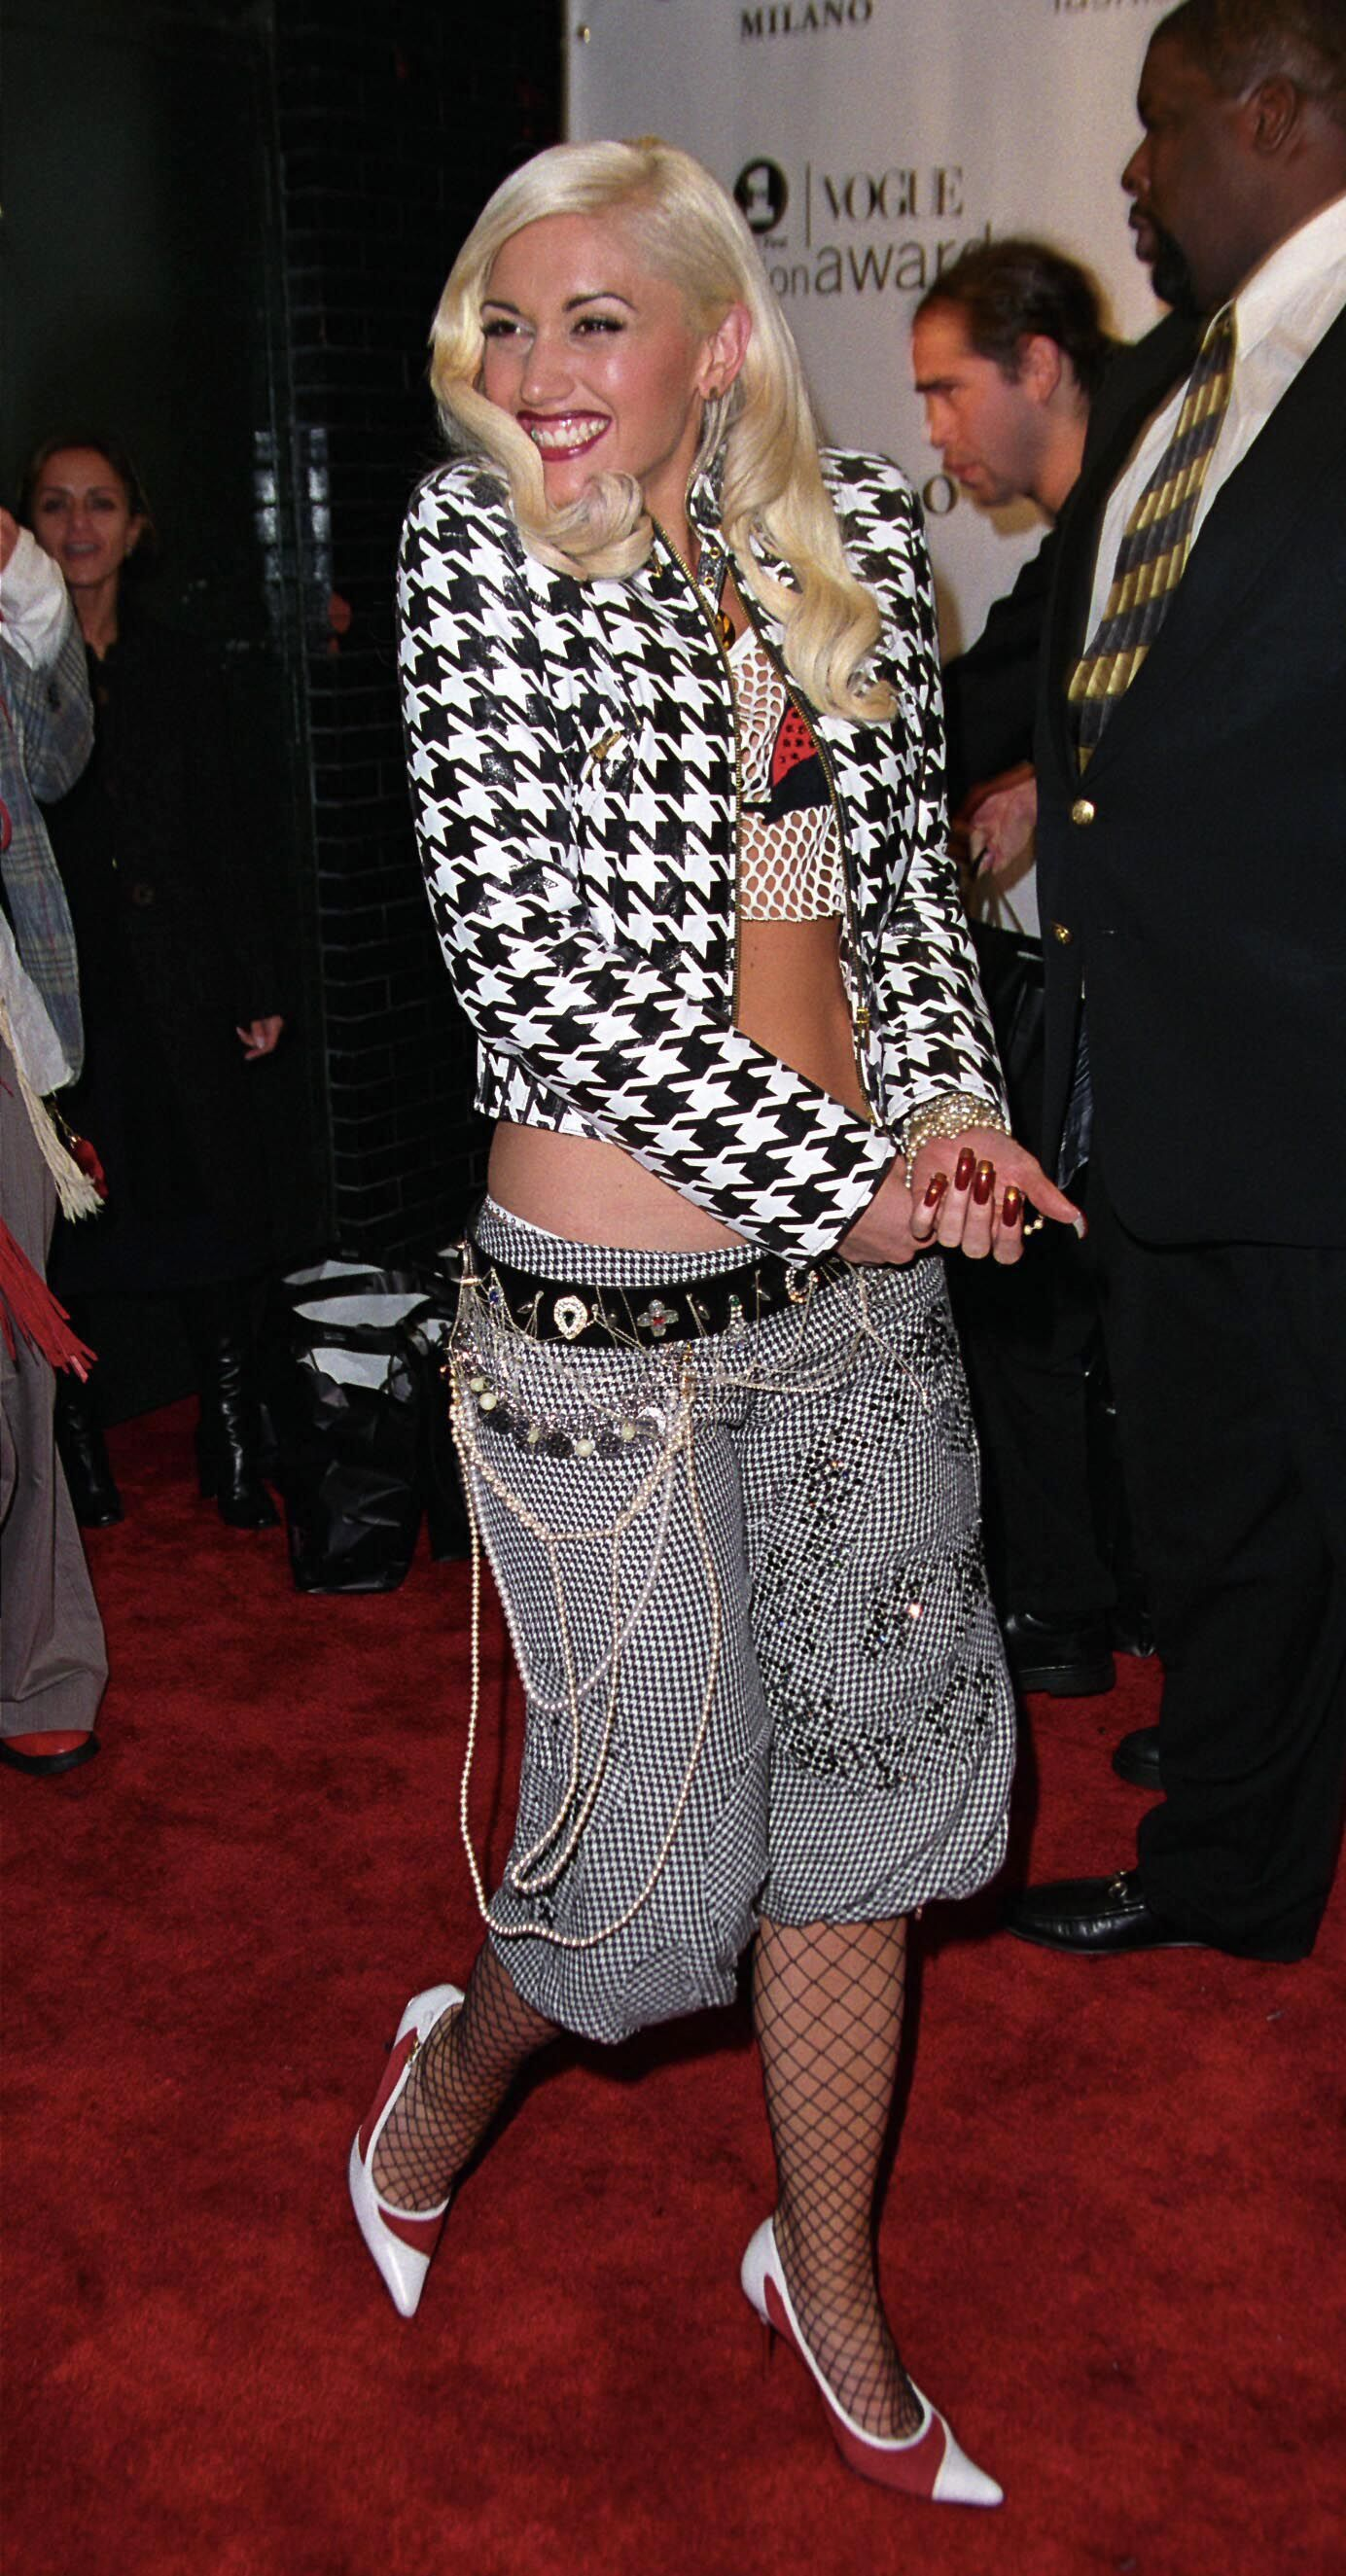 The craziest most cringeworthy outfits celebrities wore in the